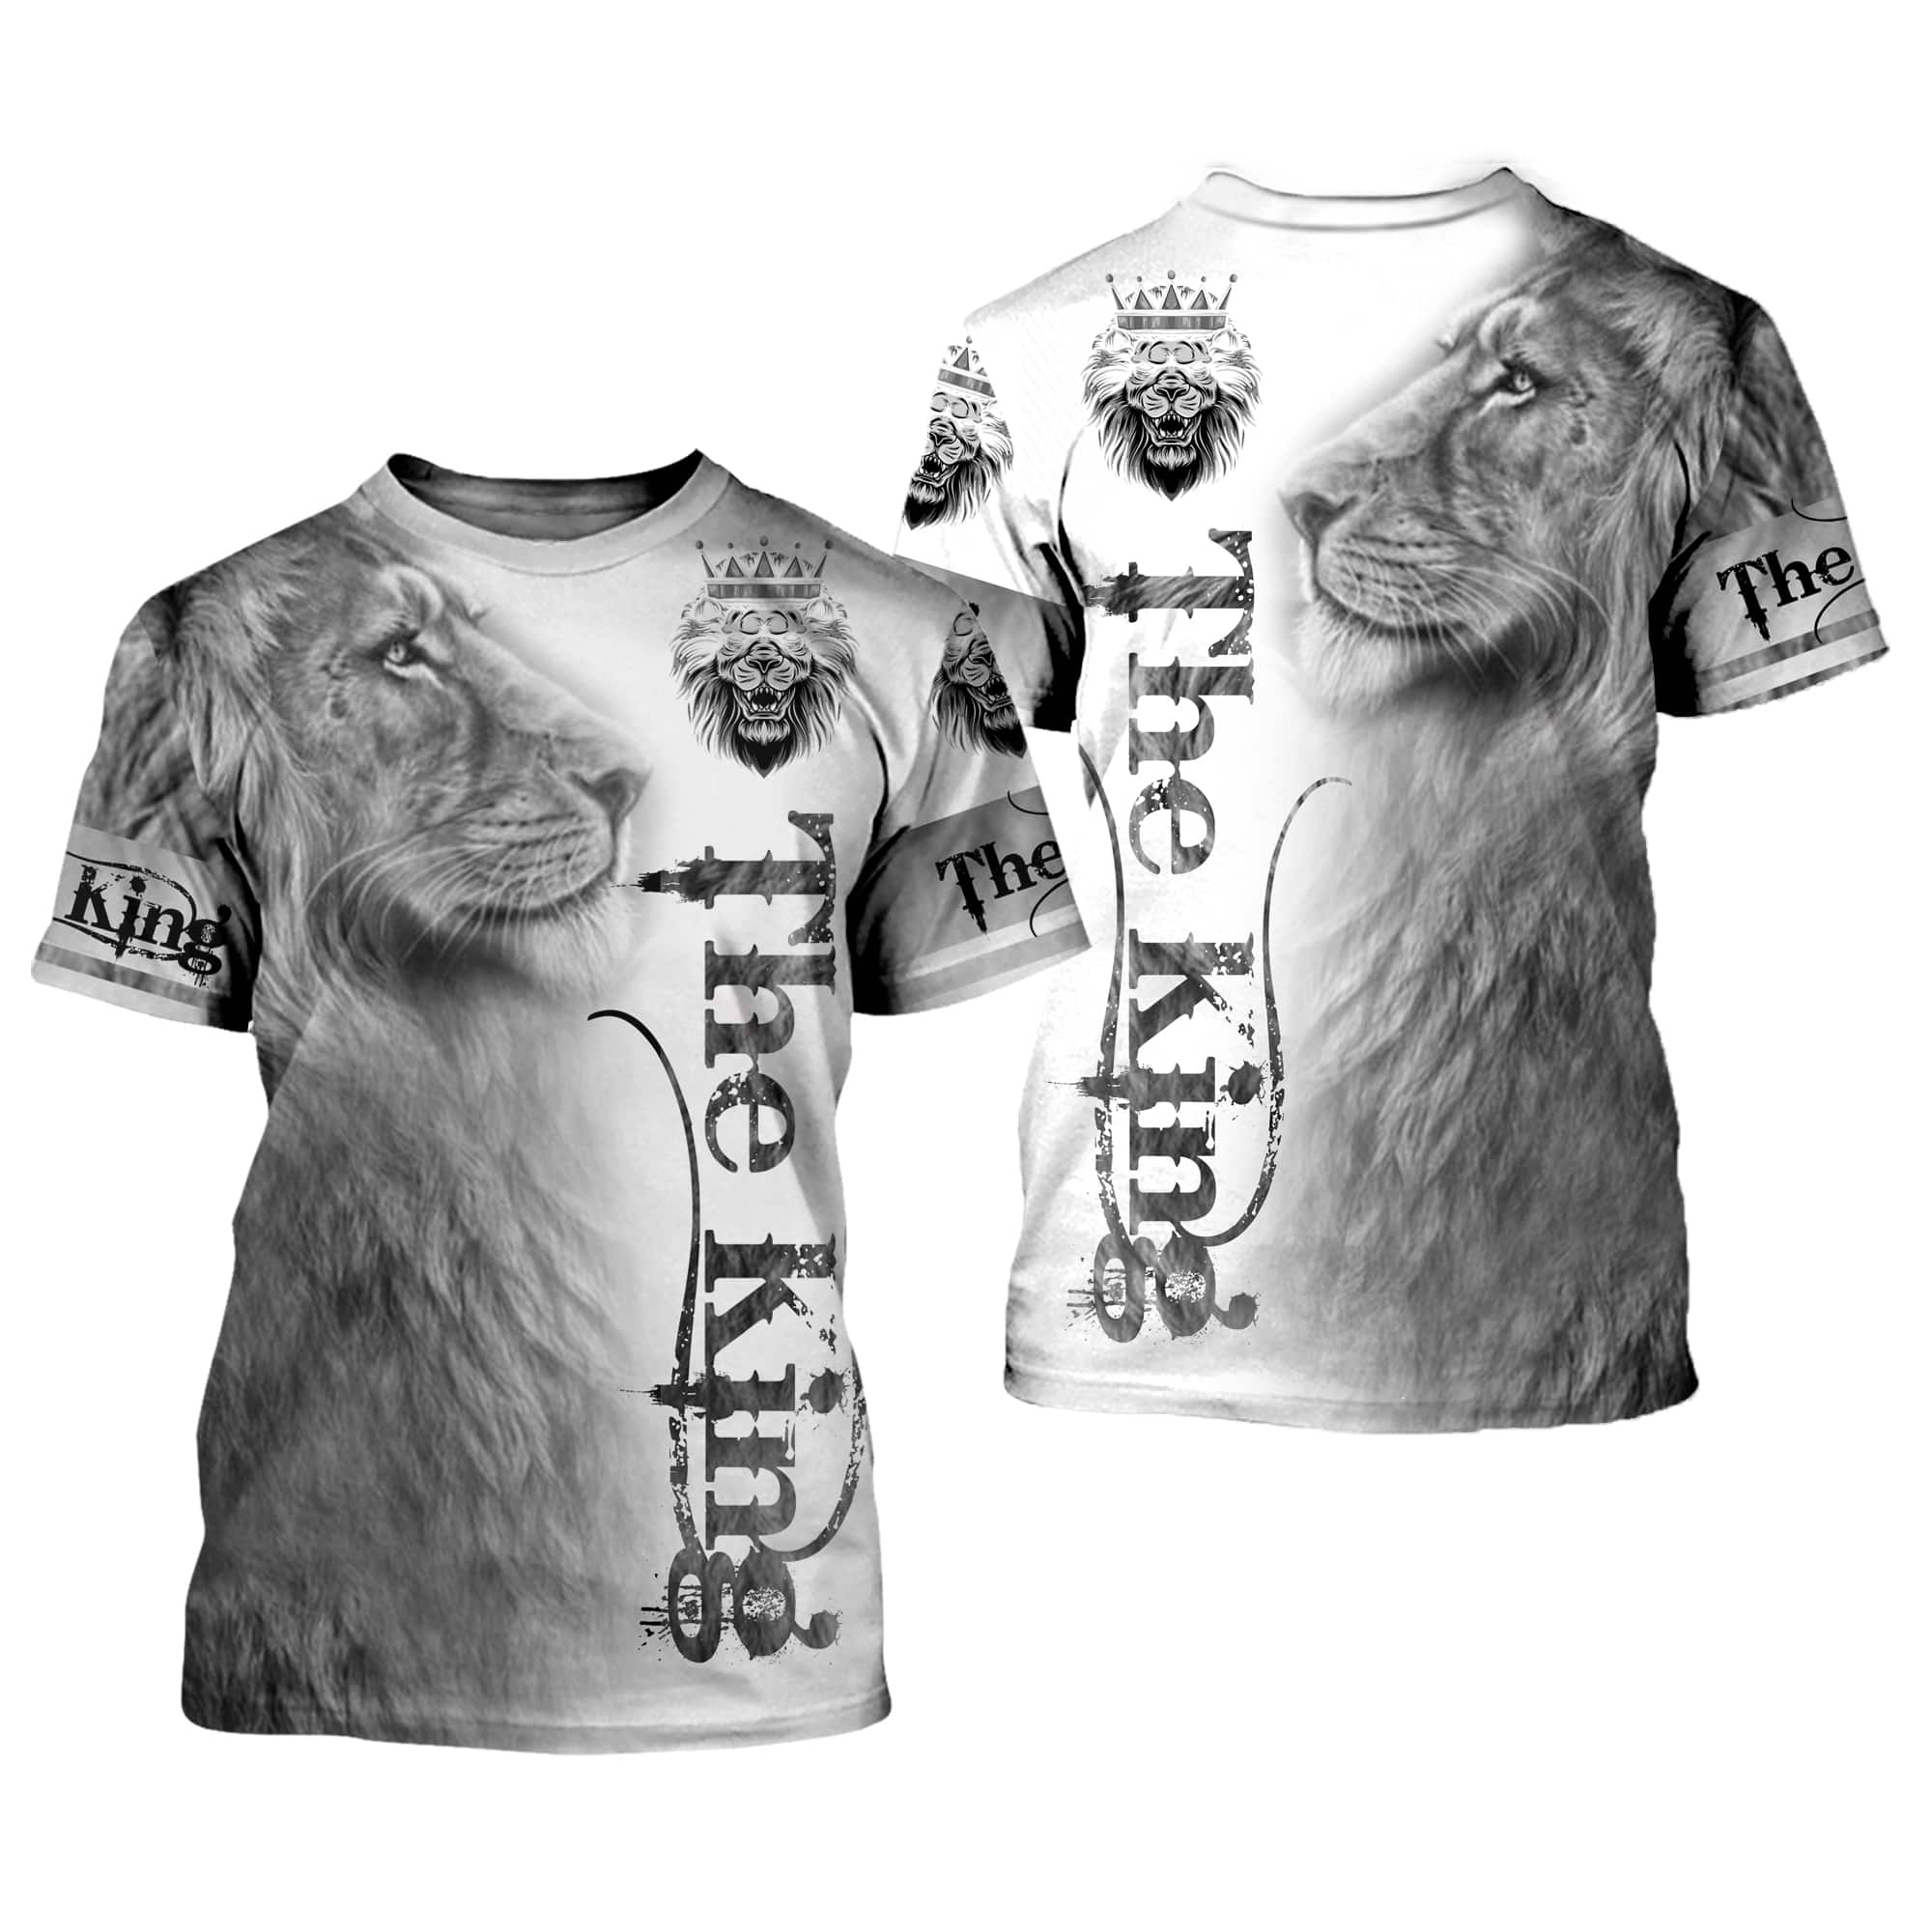 Lion 3D All Over Printed Shirts For Men And Women 01